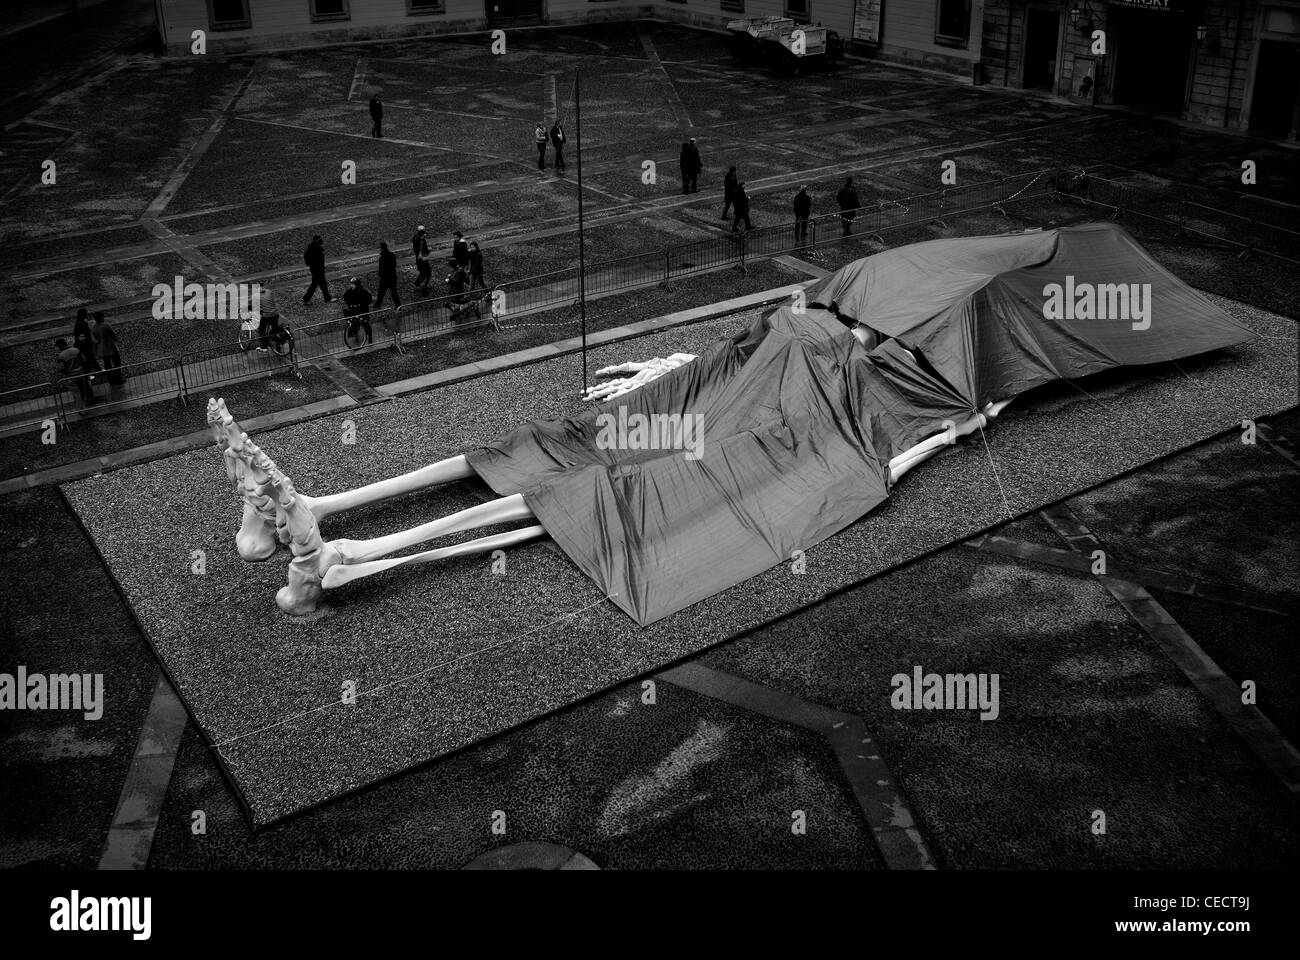 Milan, Italy. Big skeleton in public square - Stock Image